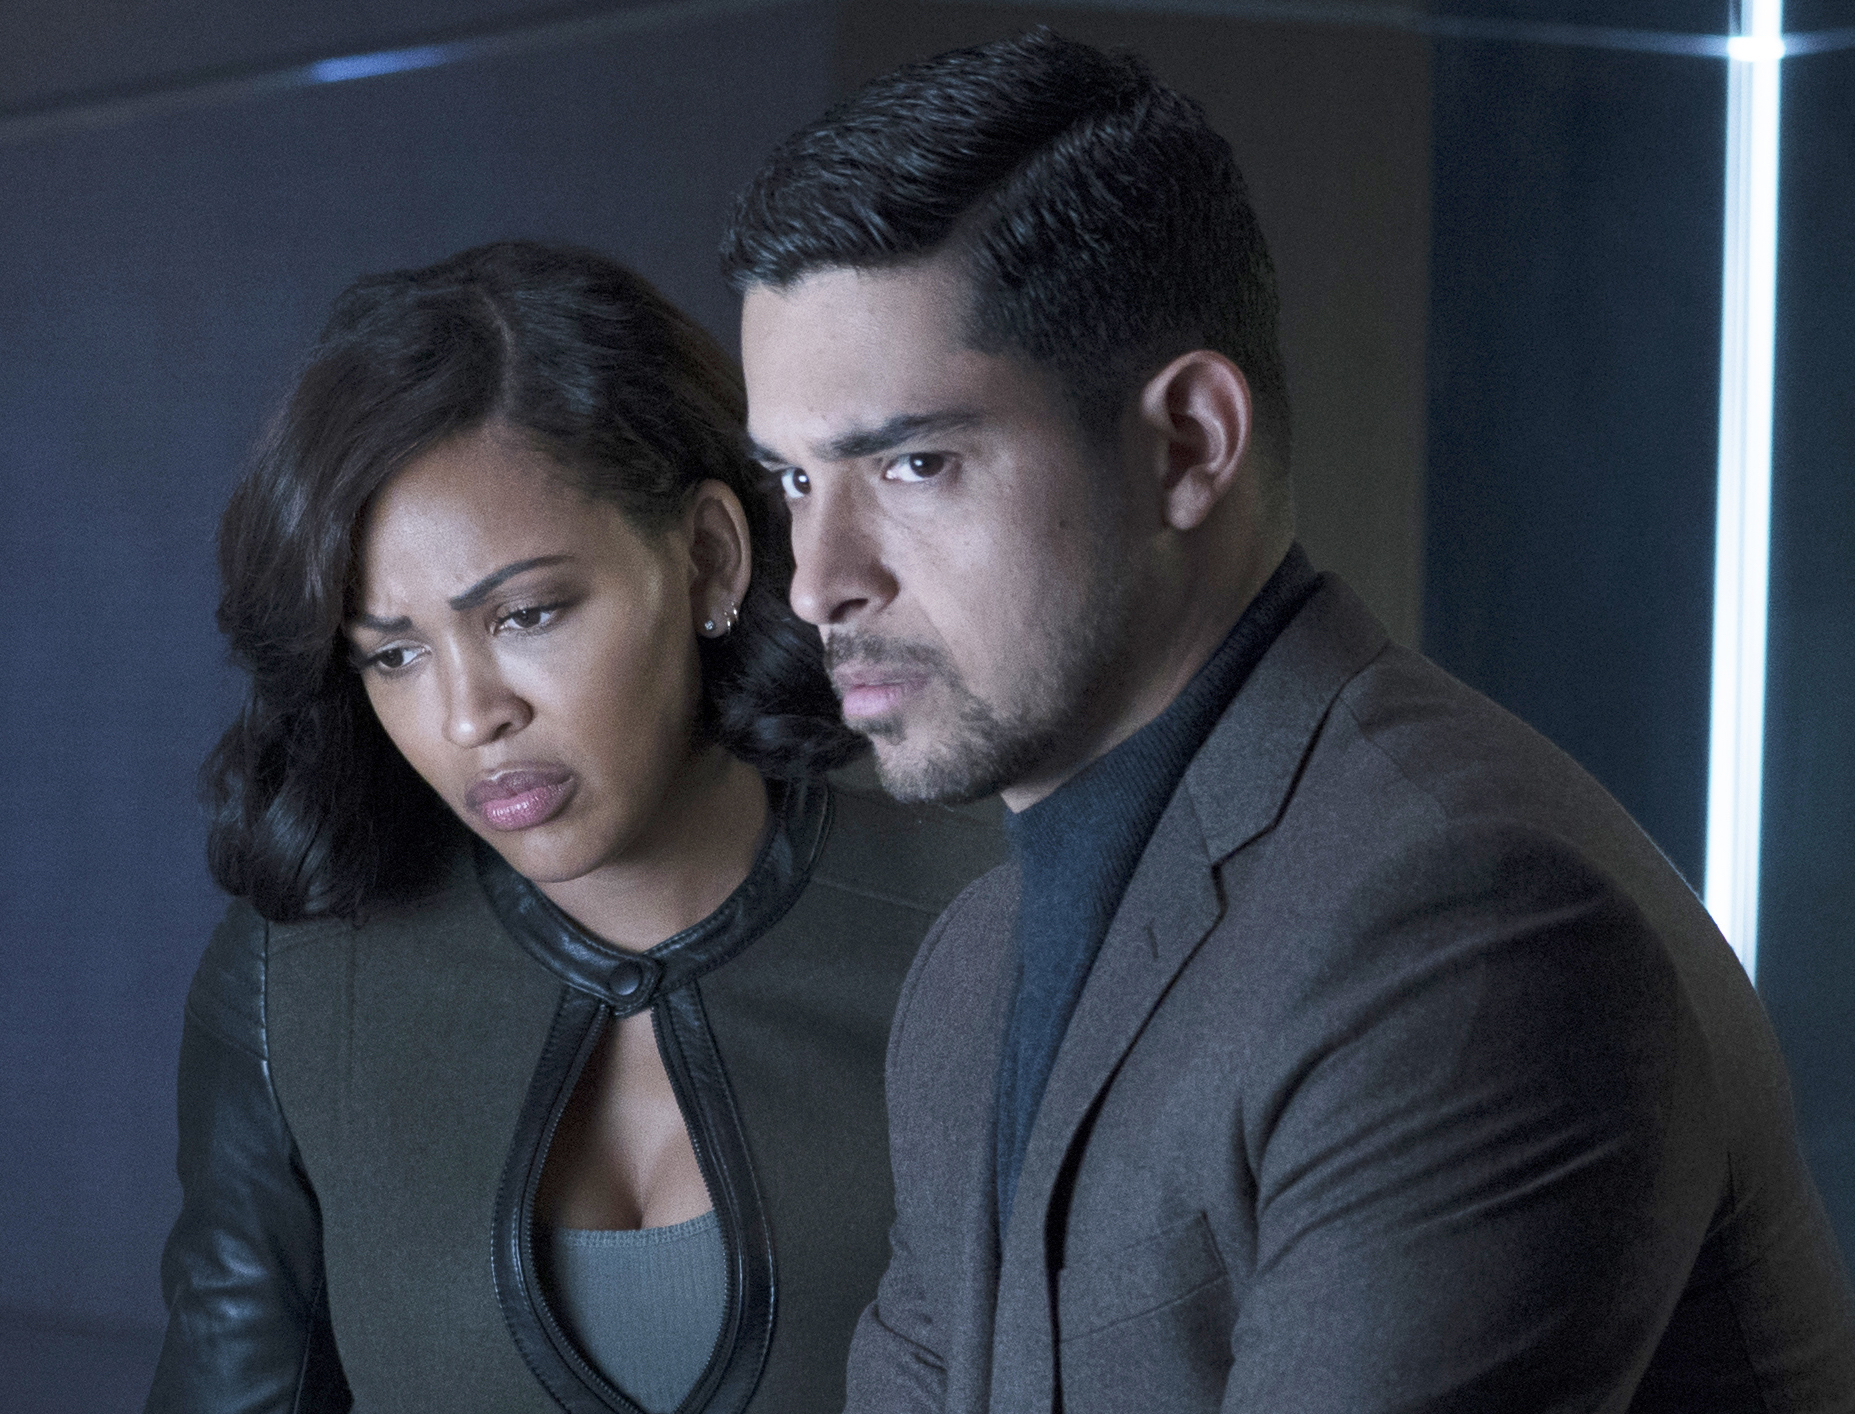 a review of the minority report Minority report | 2002 | pg-13 | - 565  the review continues below  our  ratings and reviews are based on the theatrically-released versions of films.